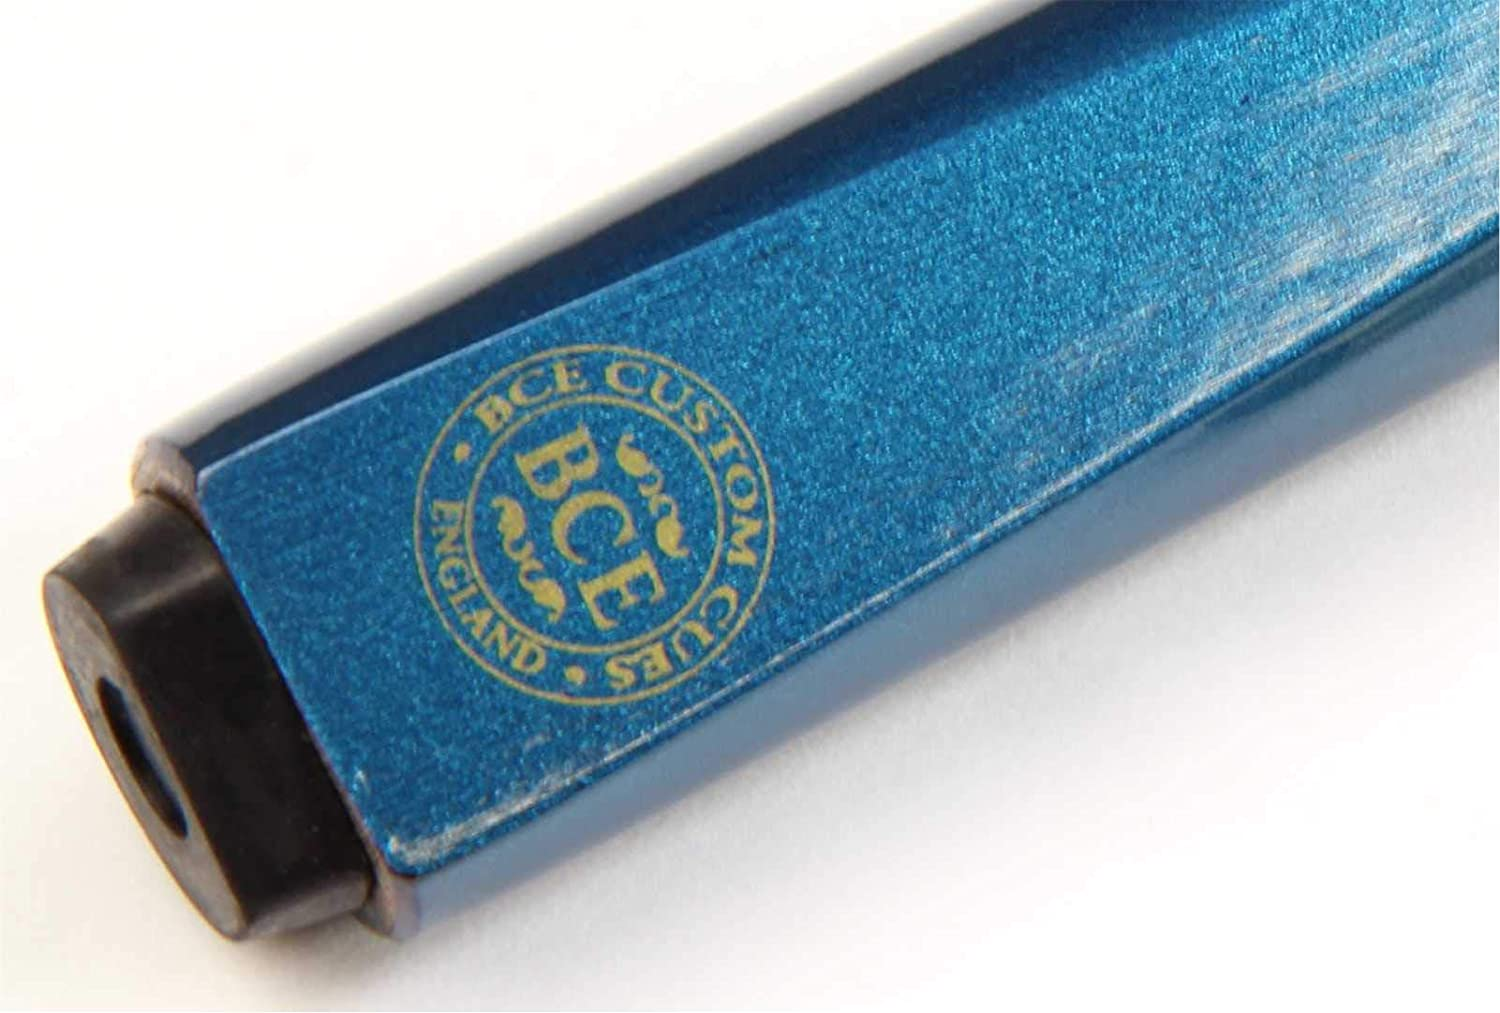 9.5mm Tip BCE 57 Inch METALLIC BLUE EXTREME 2 Piece Ash Pool Snooker Cue